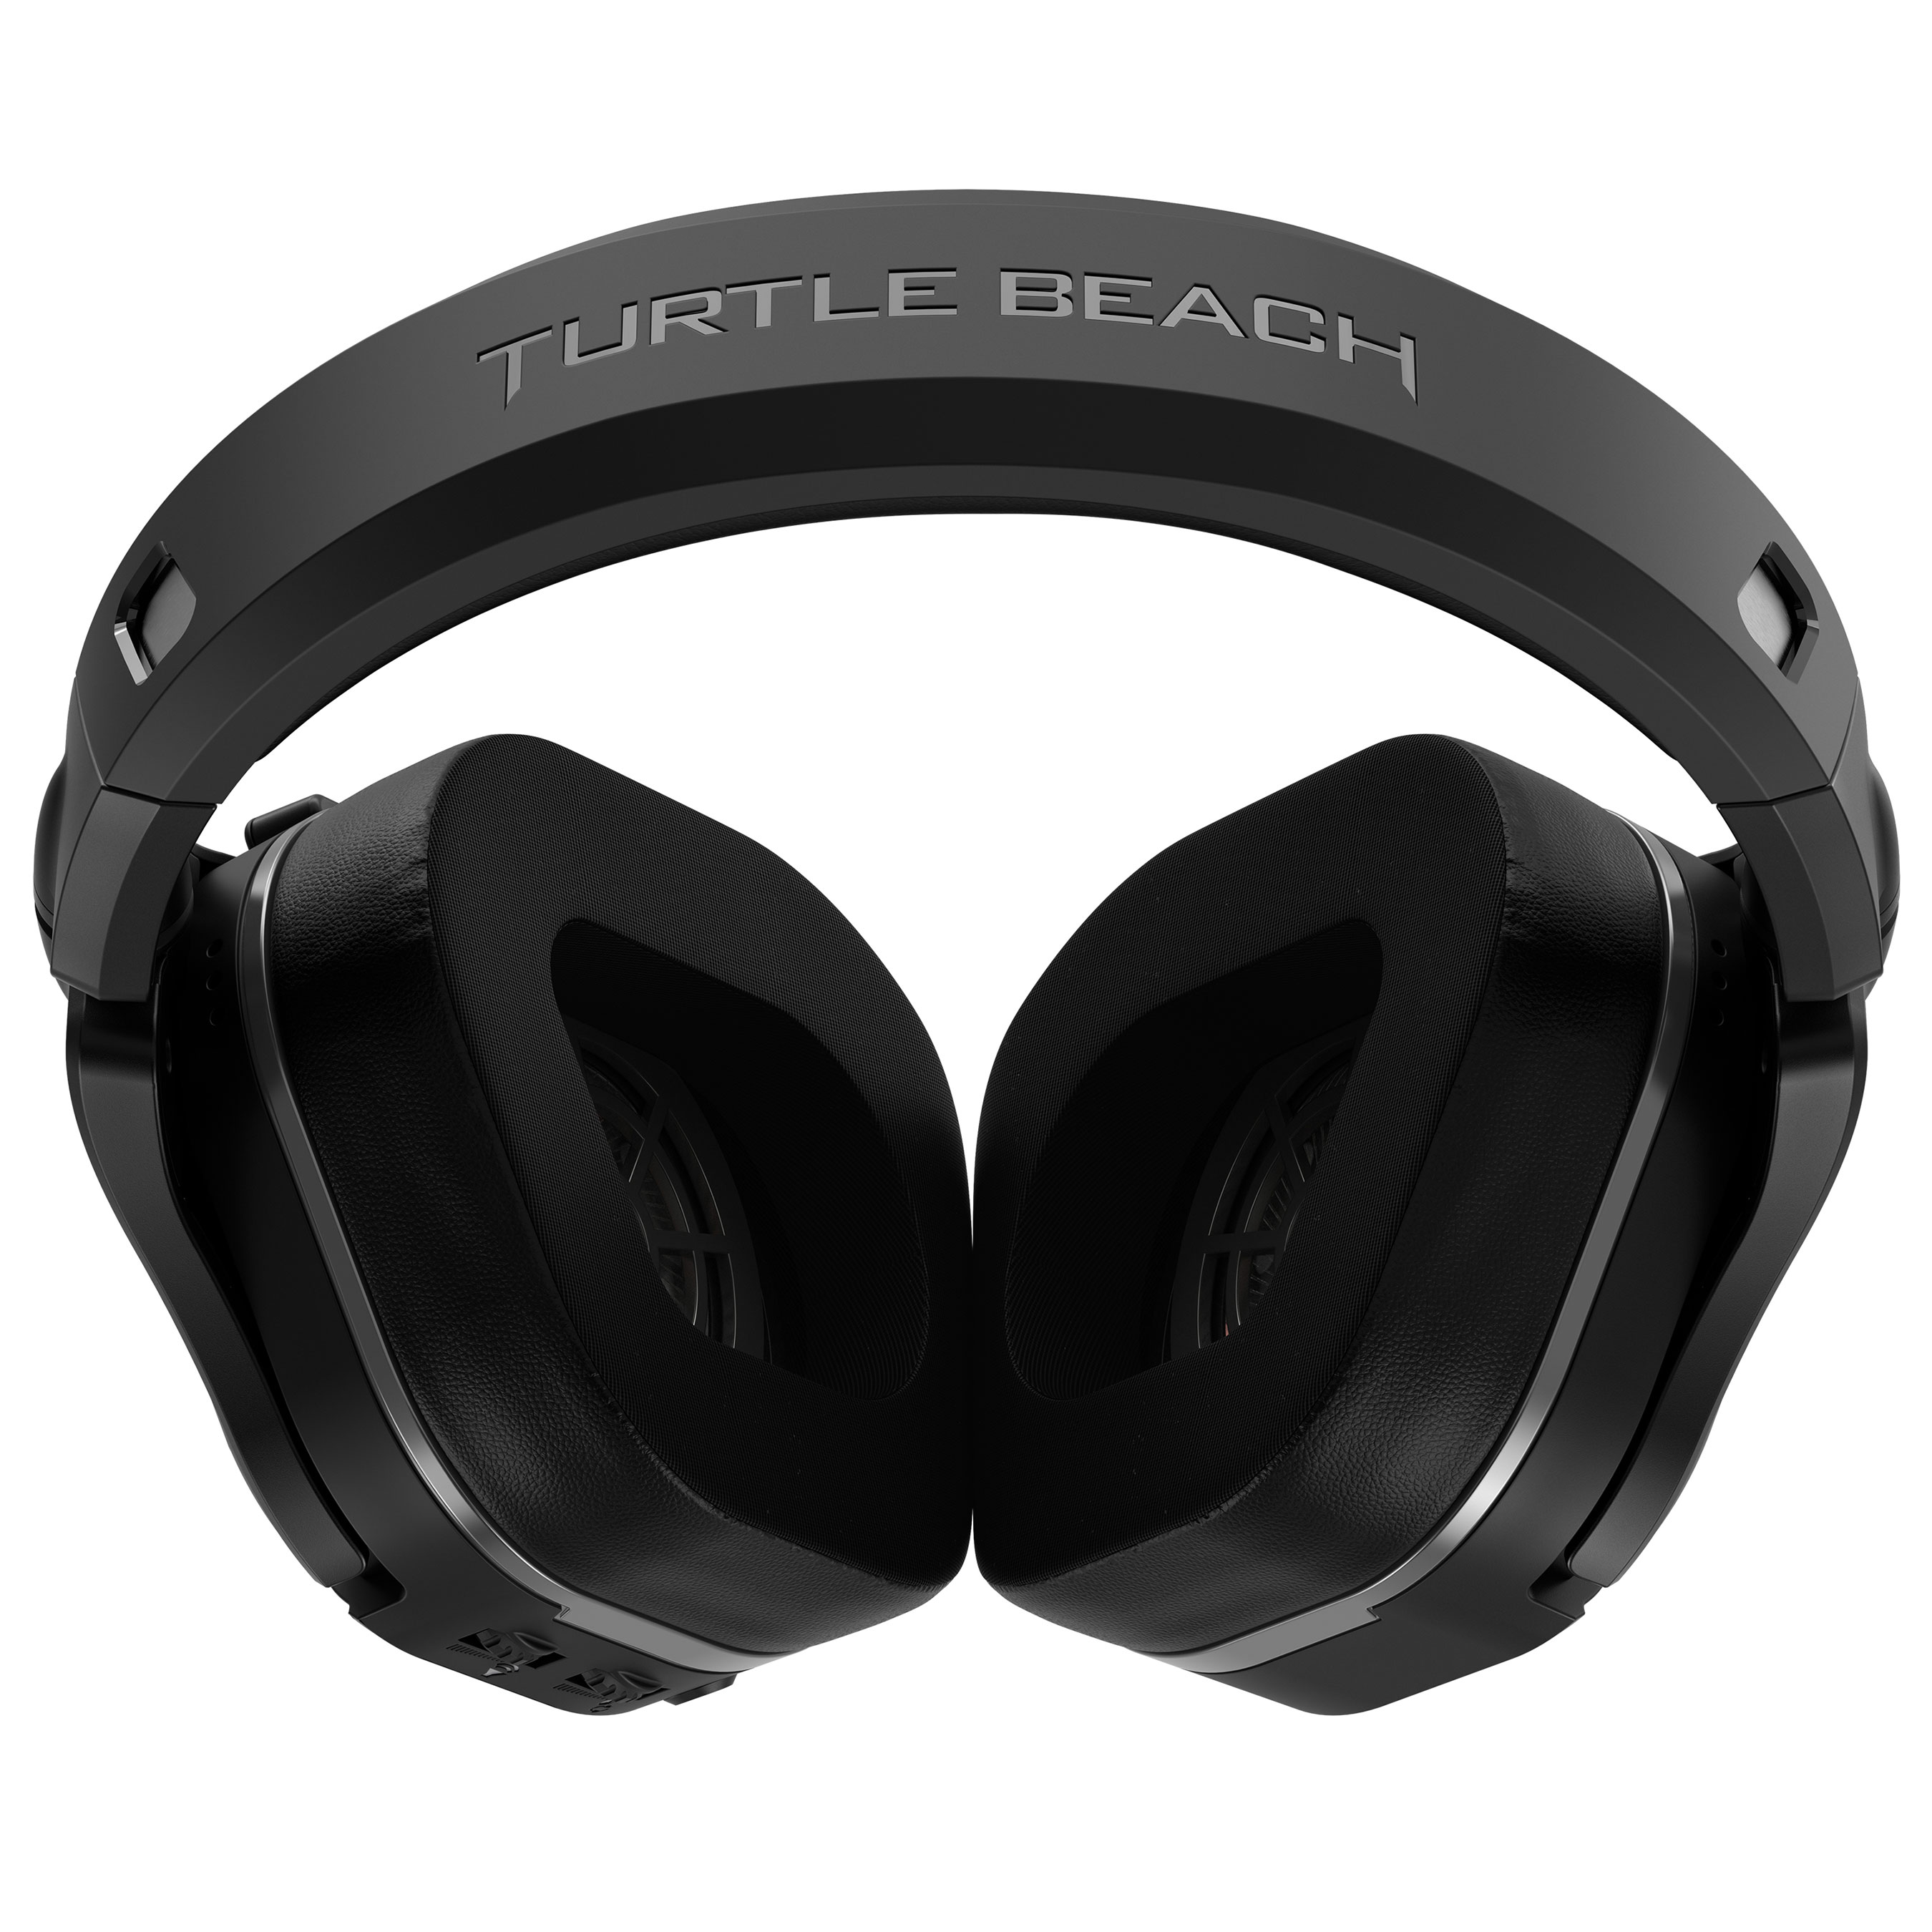 Cooling gel-infused, glasses-friendly memory foam ear cushions keep you comfortable when it matters most.